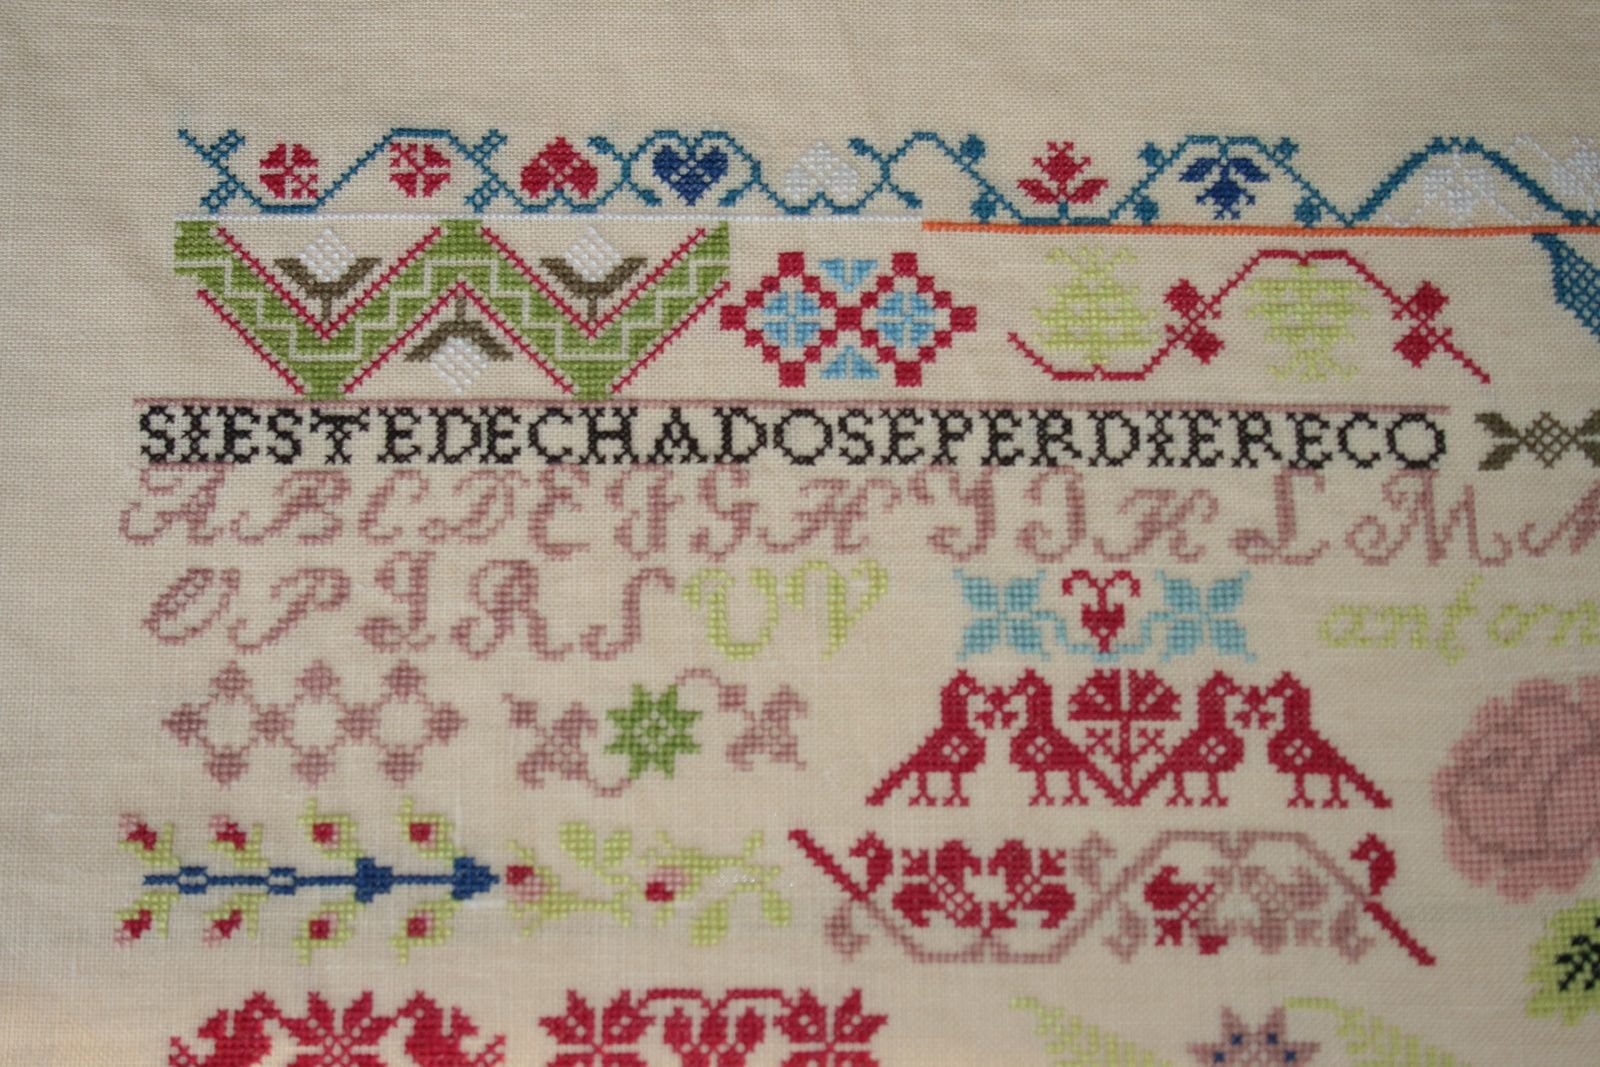 Mexican School practice 1830, Samplers Remembered